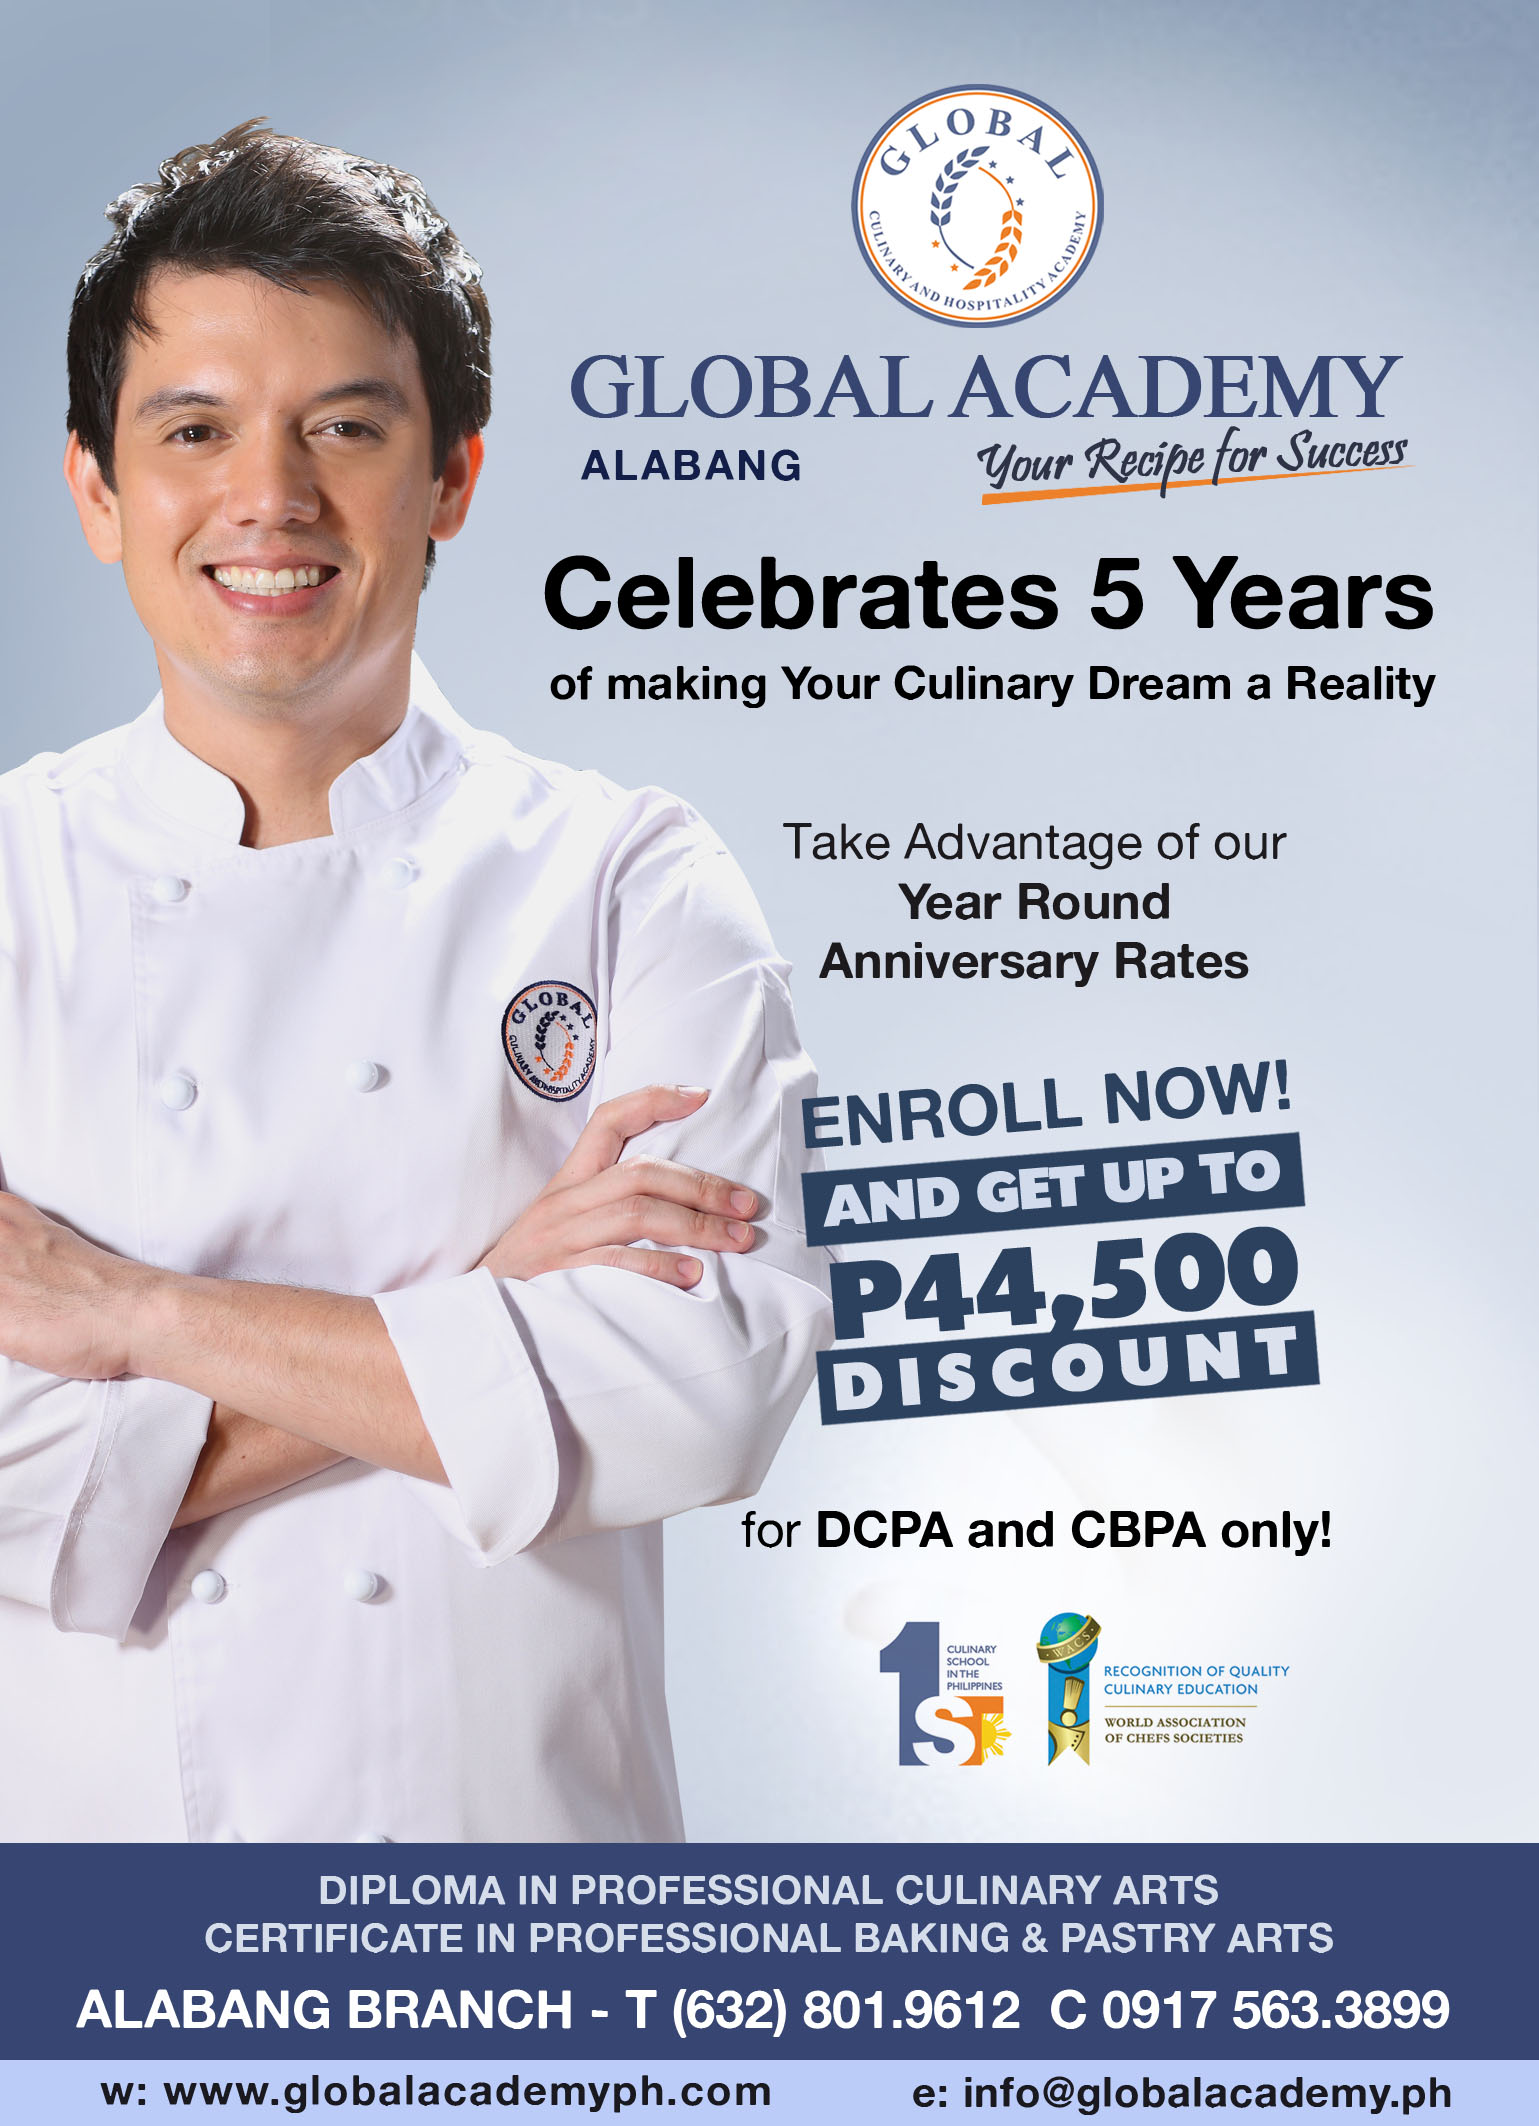 Global academy alabang turns 5 this year ablglobalacademy celebrate 5 years copy 1betcityfo Images